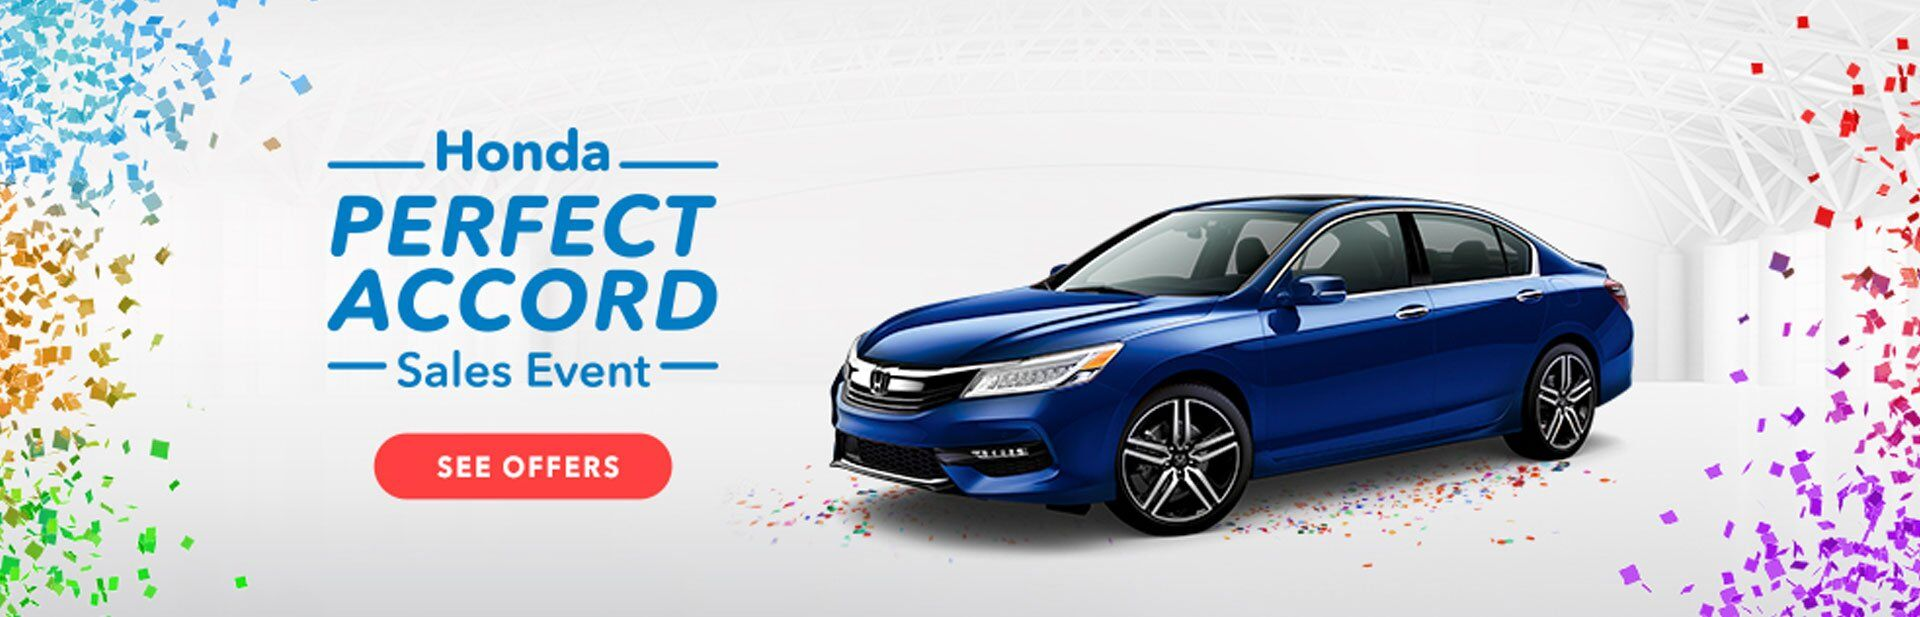 Honda Perfect Accord Sales Event going on NOW!